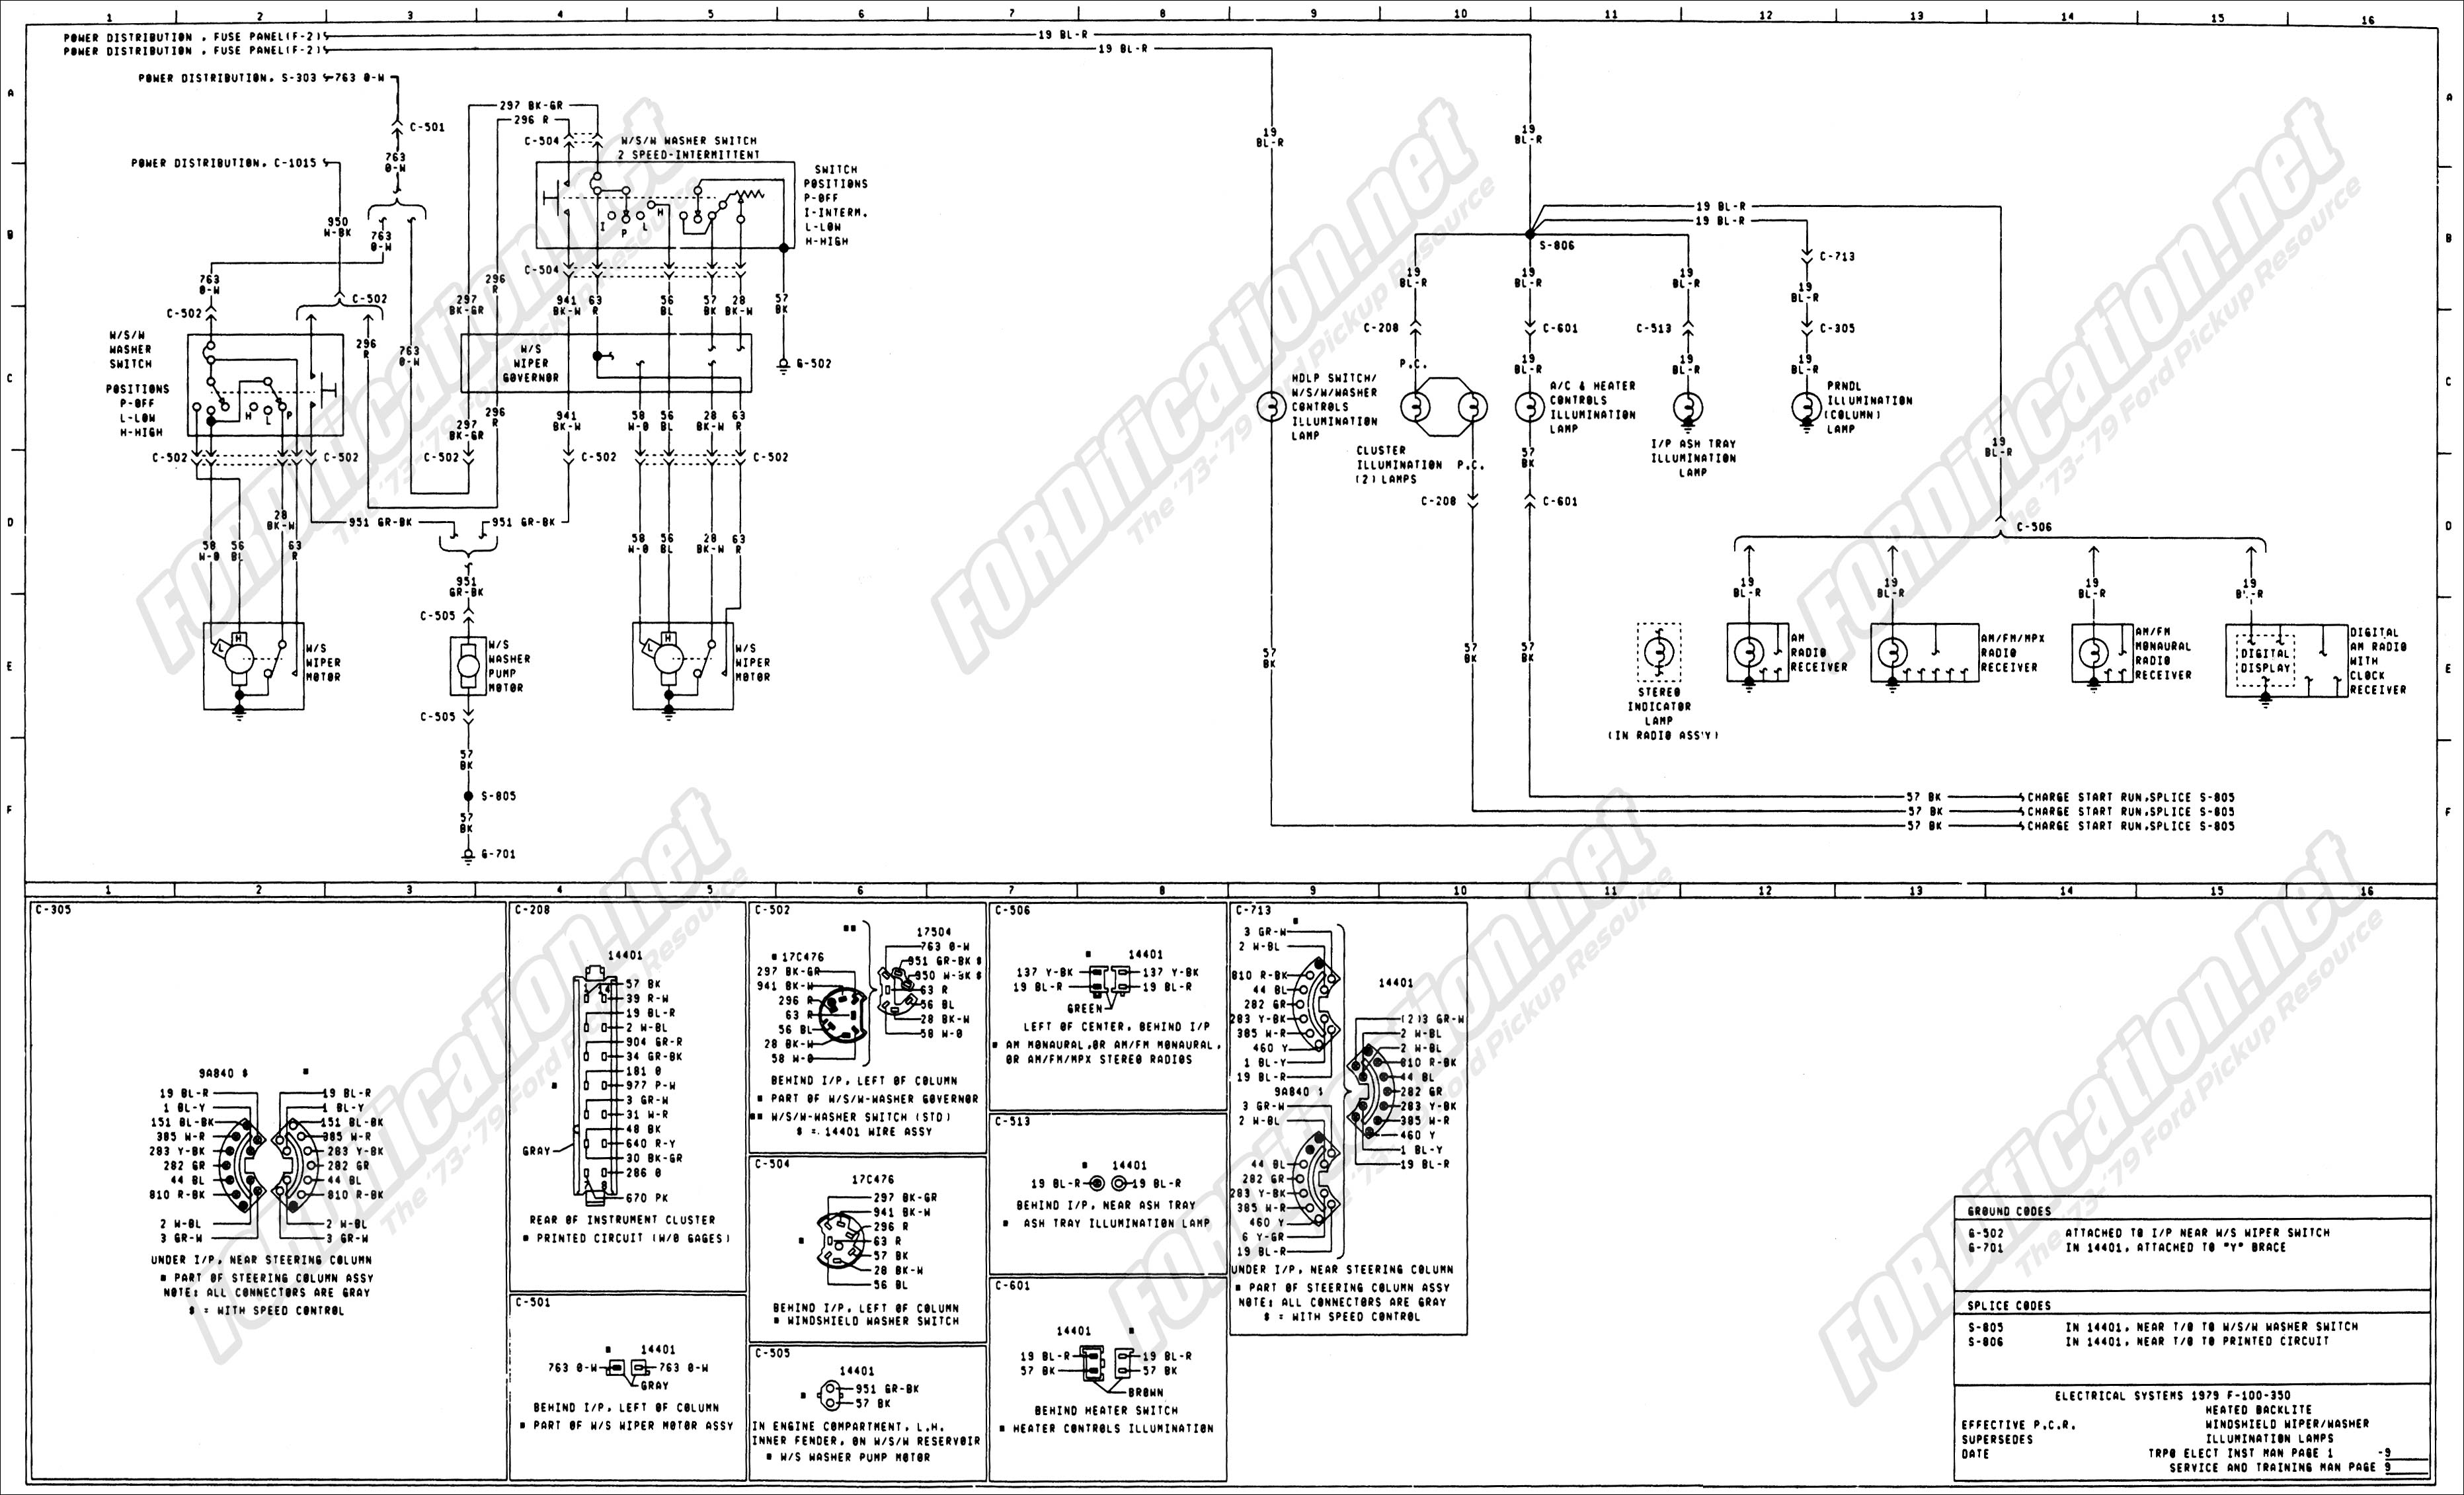 1980 Ford Mustang Wiring Diagram Trusted Harness For 95 F150 Windshield Wiper U2022 Jeep Cj5